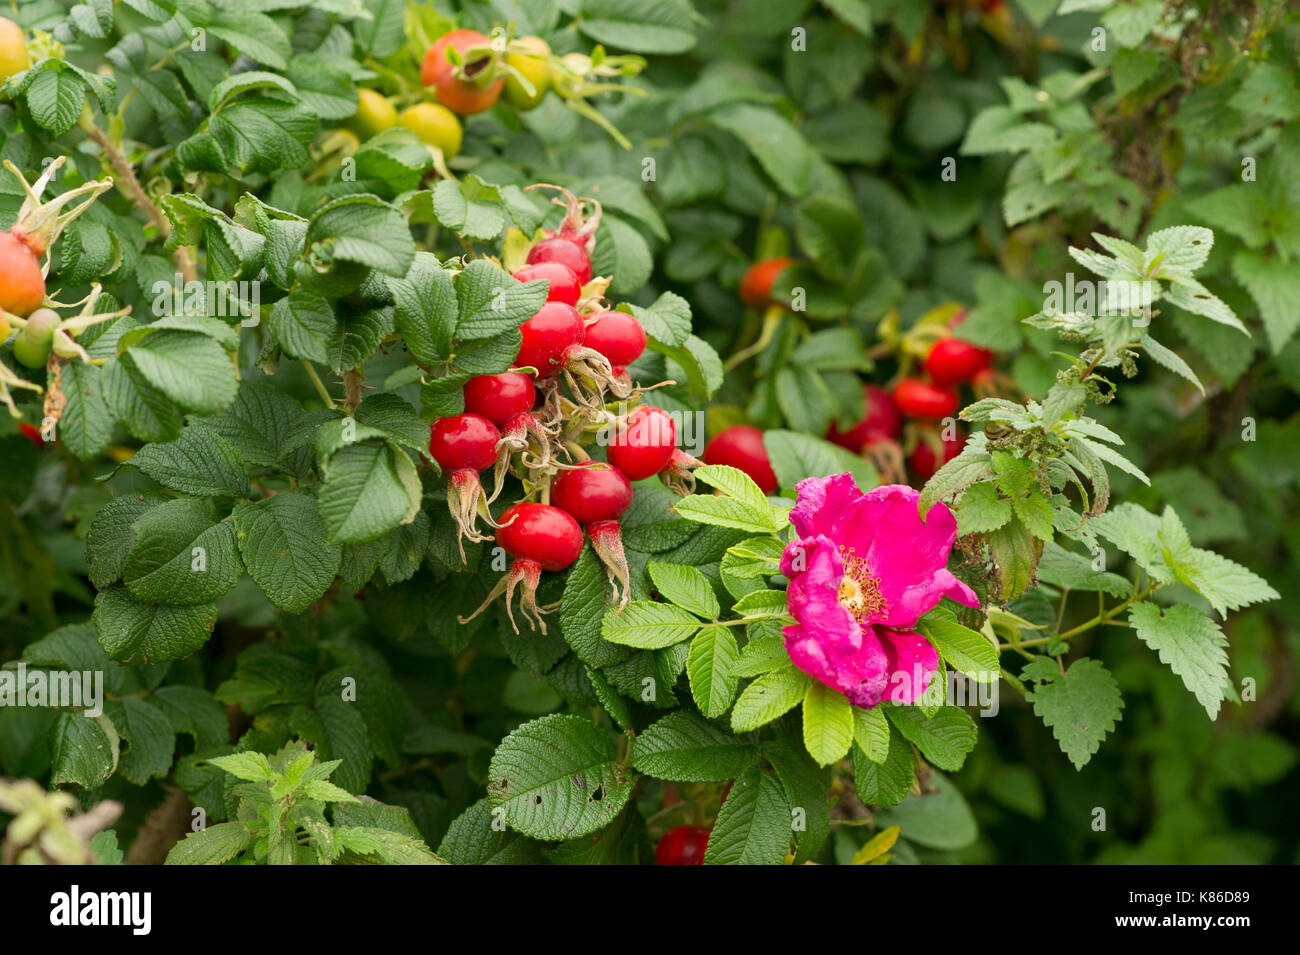 Rose hips with flowers. - Stock Image